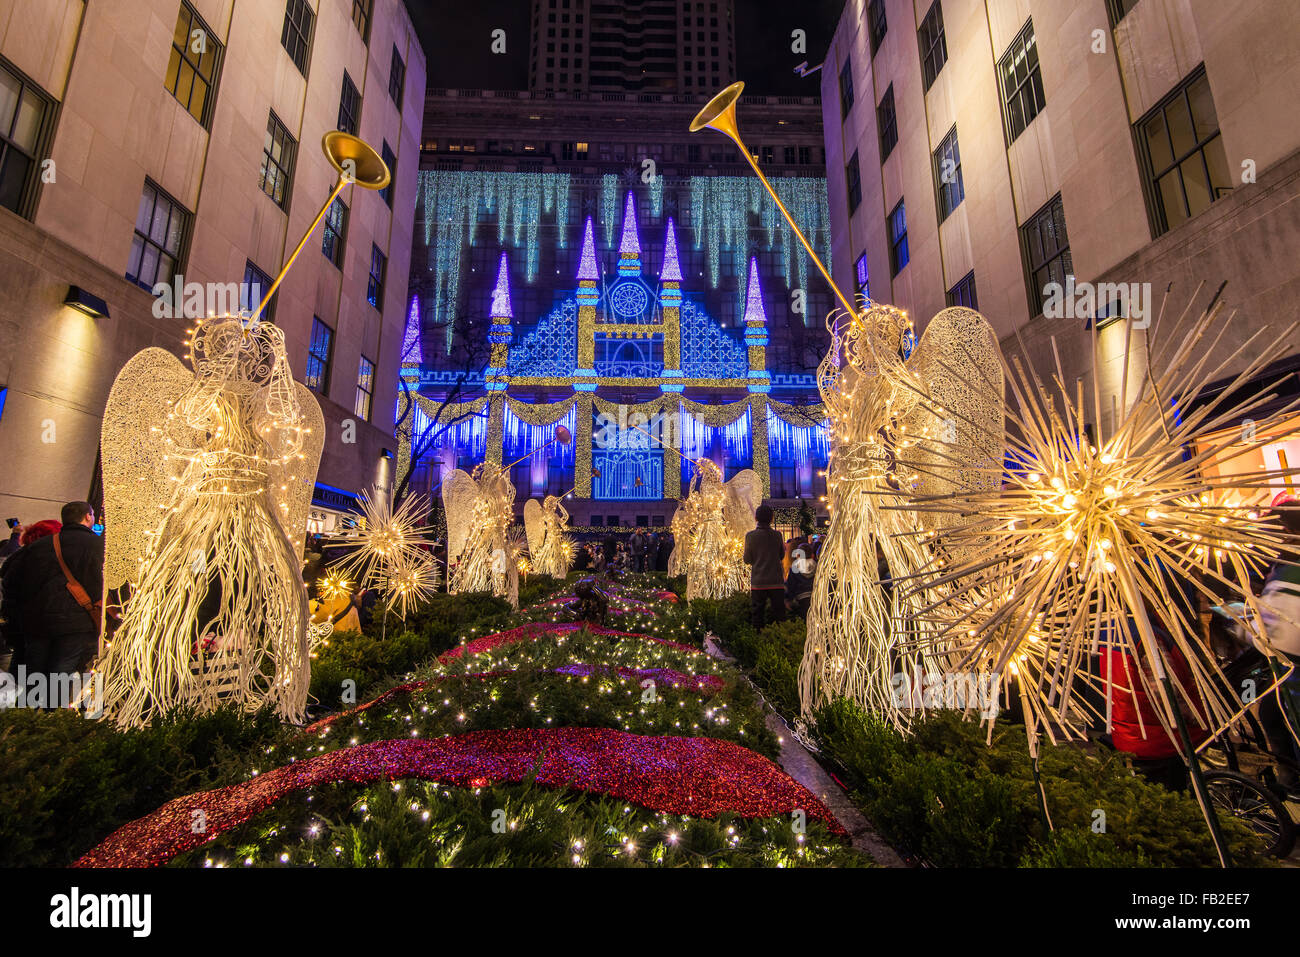 Anges de Noël du Rockefeller Center Channel Gardens avec Saks department store's Christmas light show derrière, Photo Stock